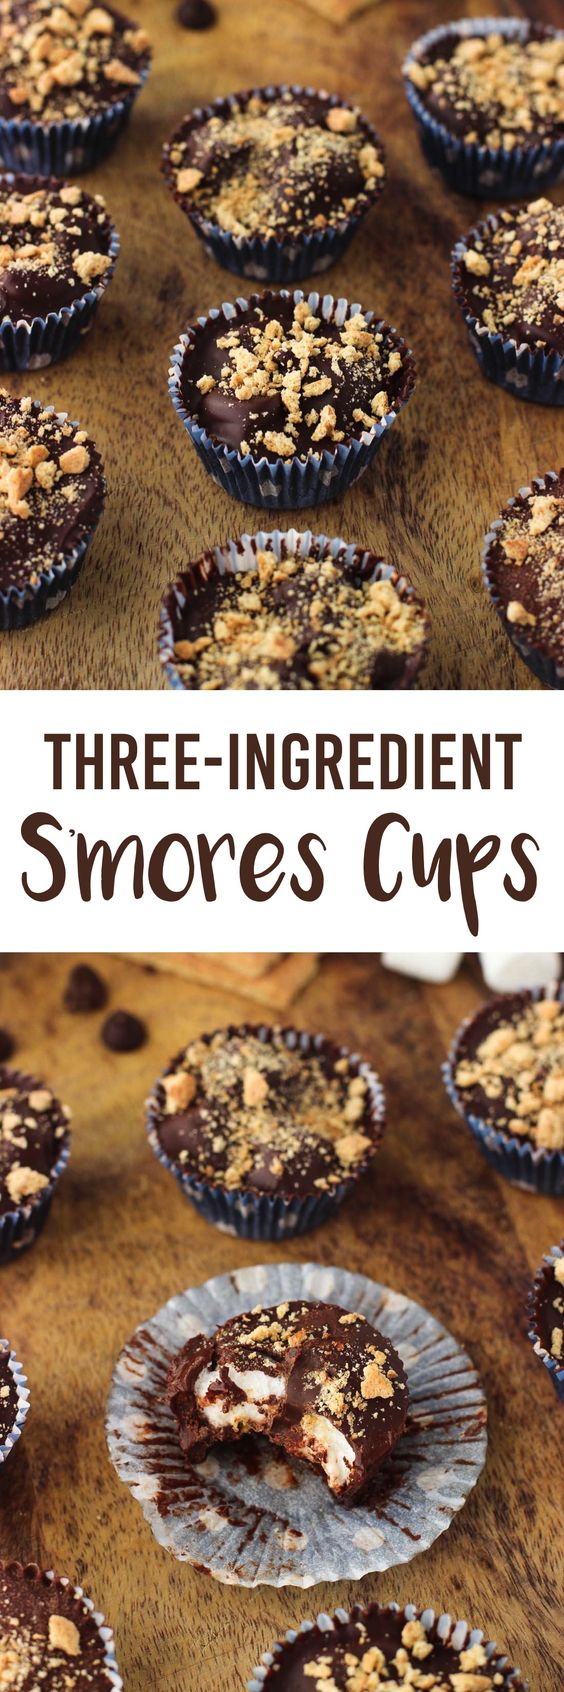 This recipe for three-ingredient S'mores Cups are an easy chocolate candy just perfect for holiday dessert trays or gift giving!